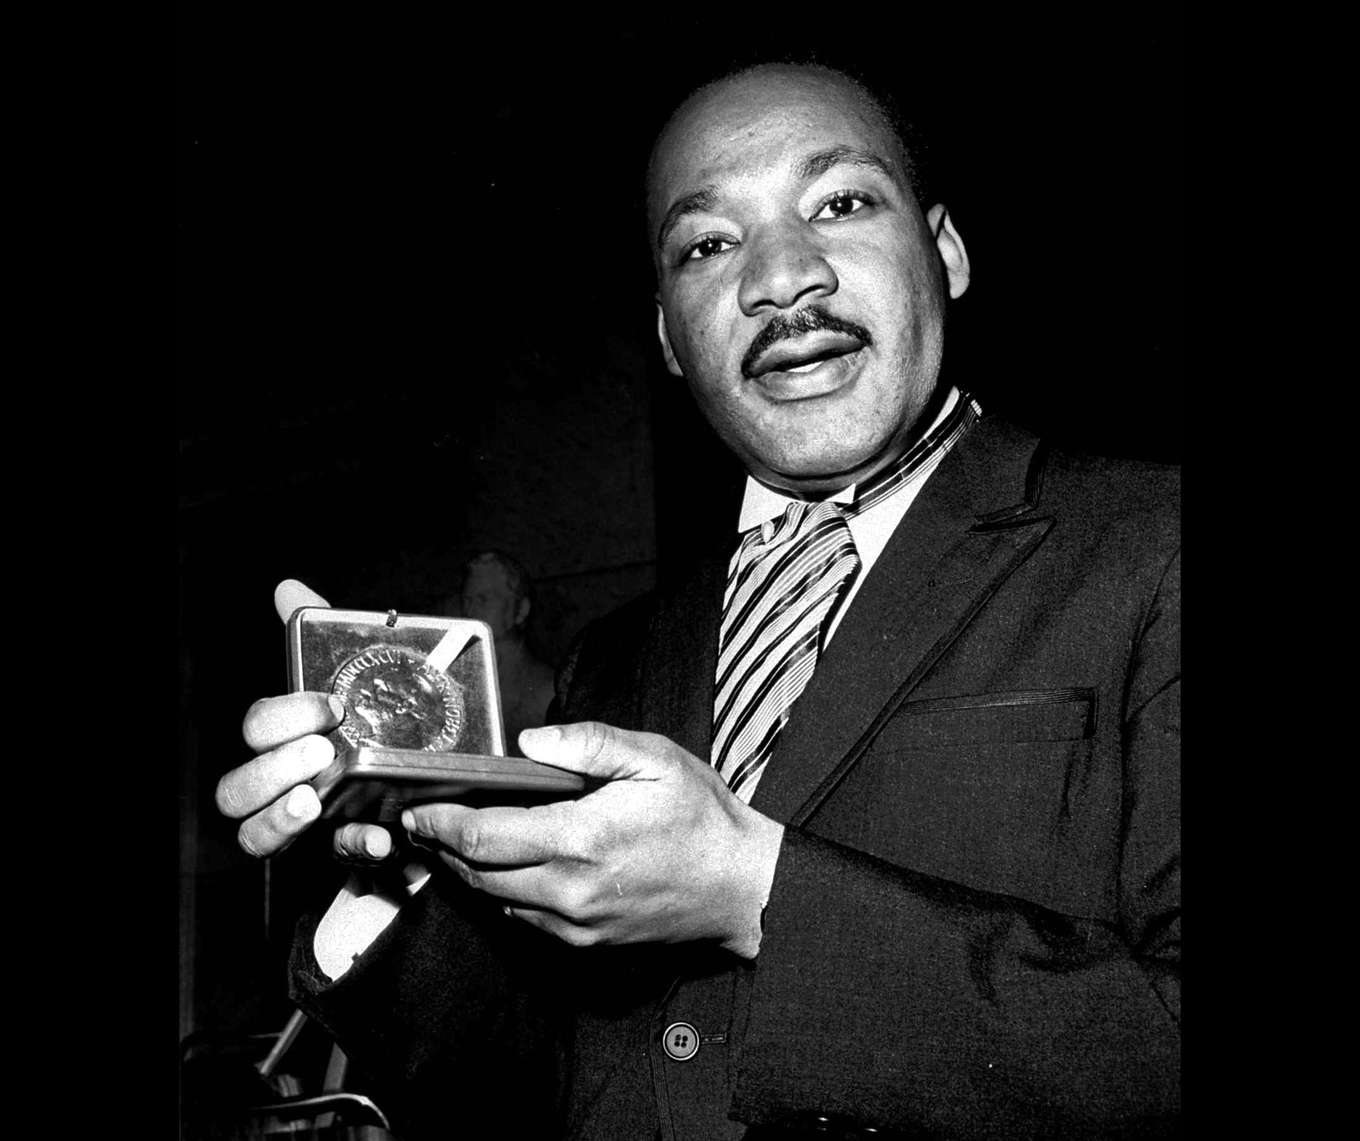 The magnanimous Martin Luther King, Jr. | Tampa Bay Times